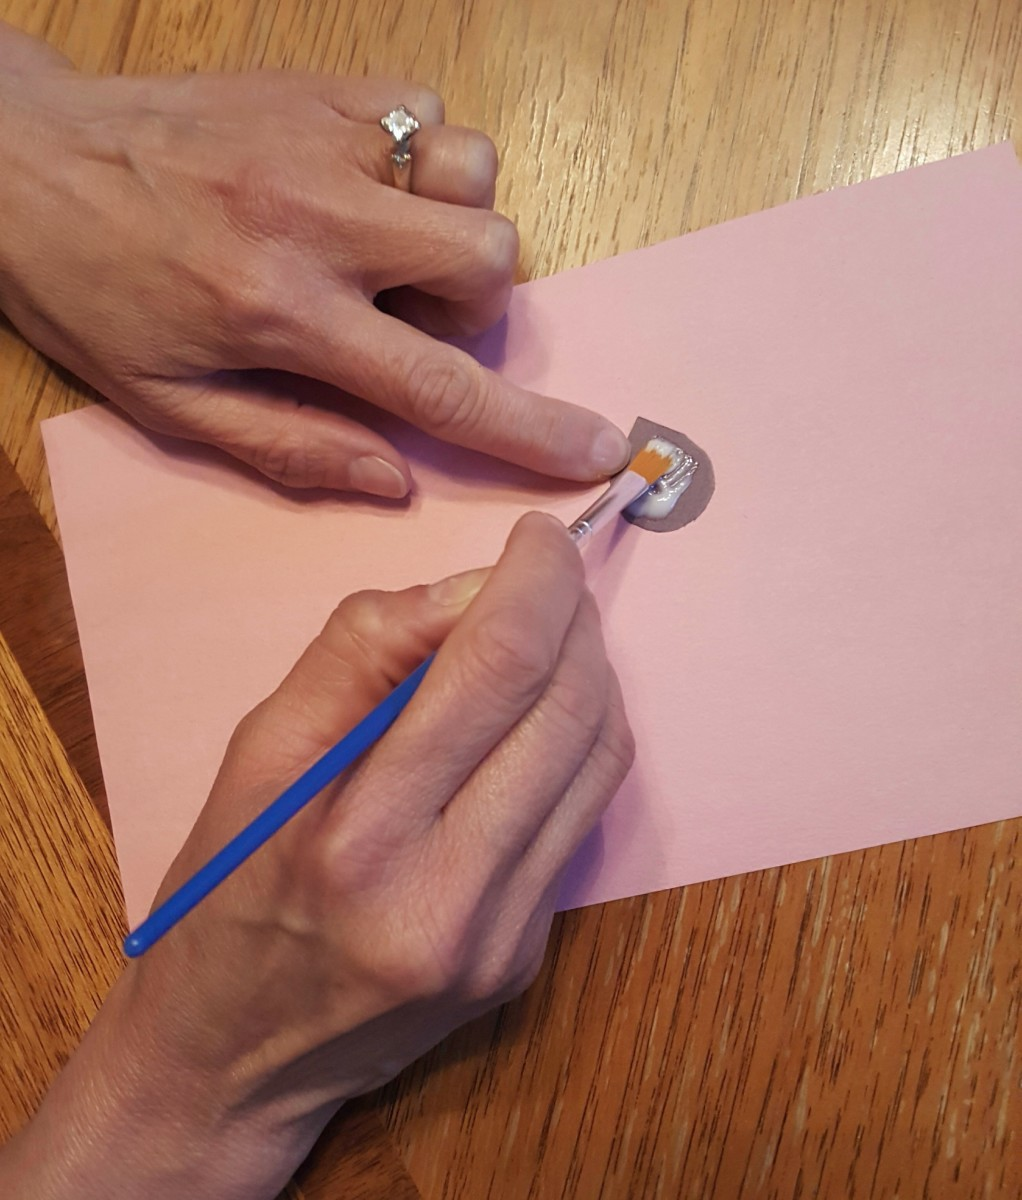 Spread The Dot Of Glue With A Paintbrush